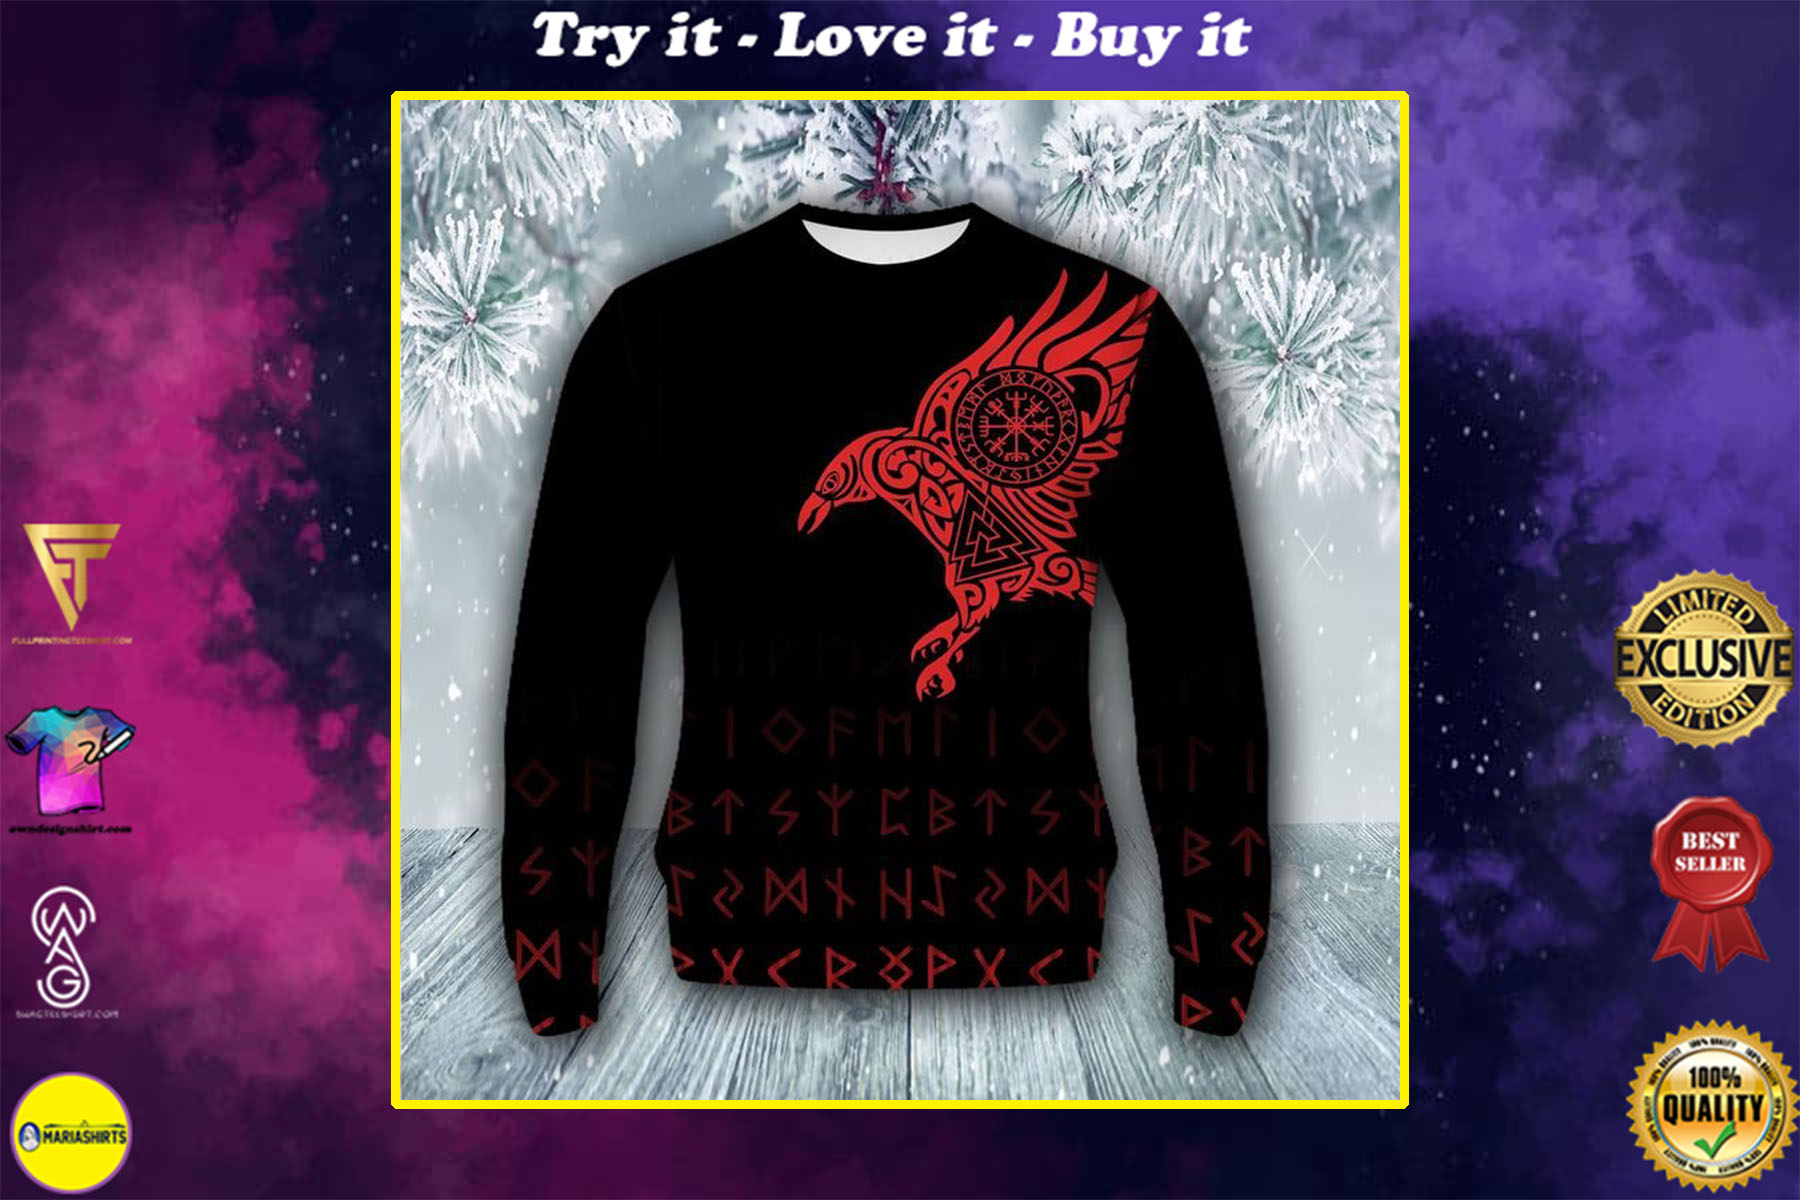 [special edition] raven viking all over printed ugly christmas sweater - maria